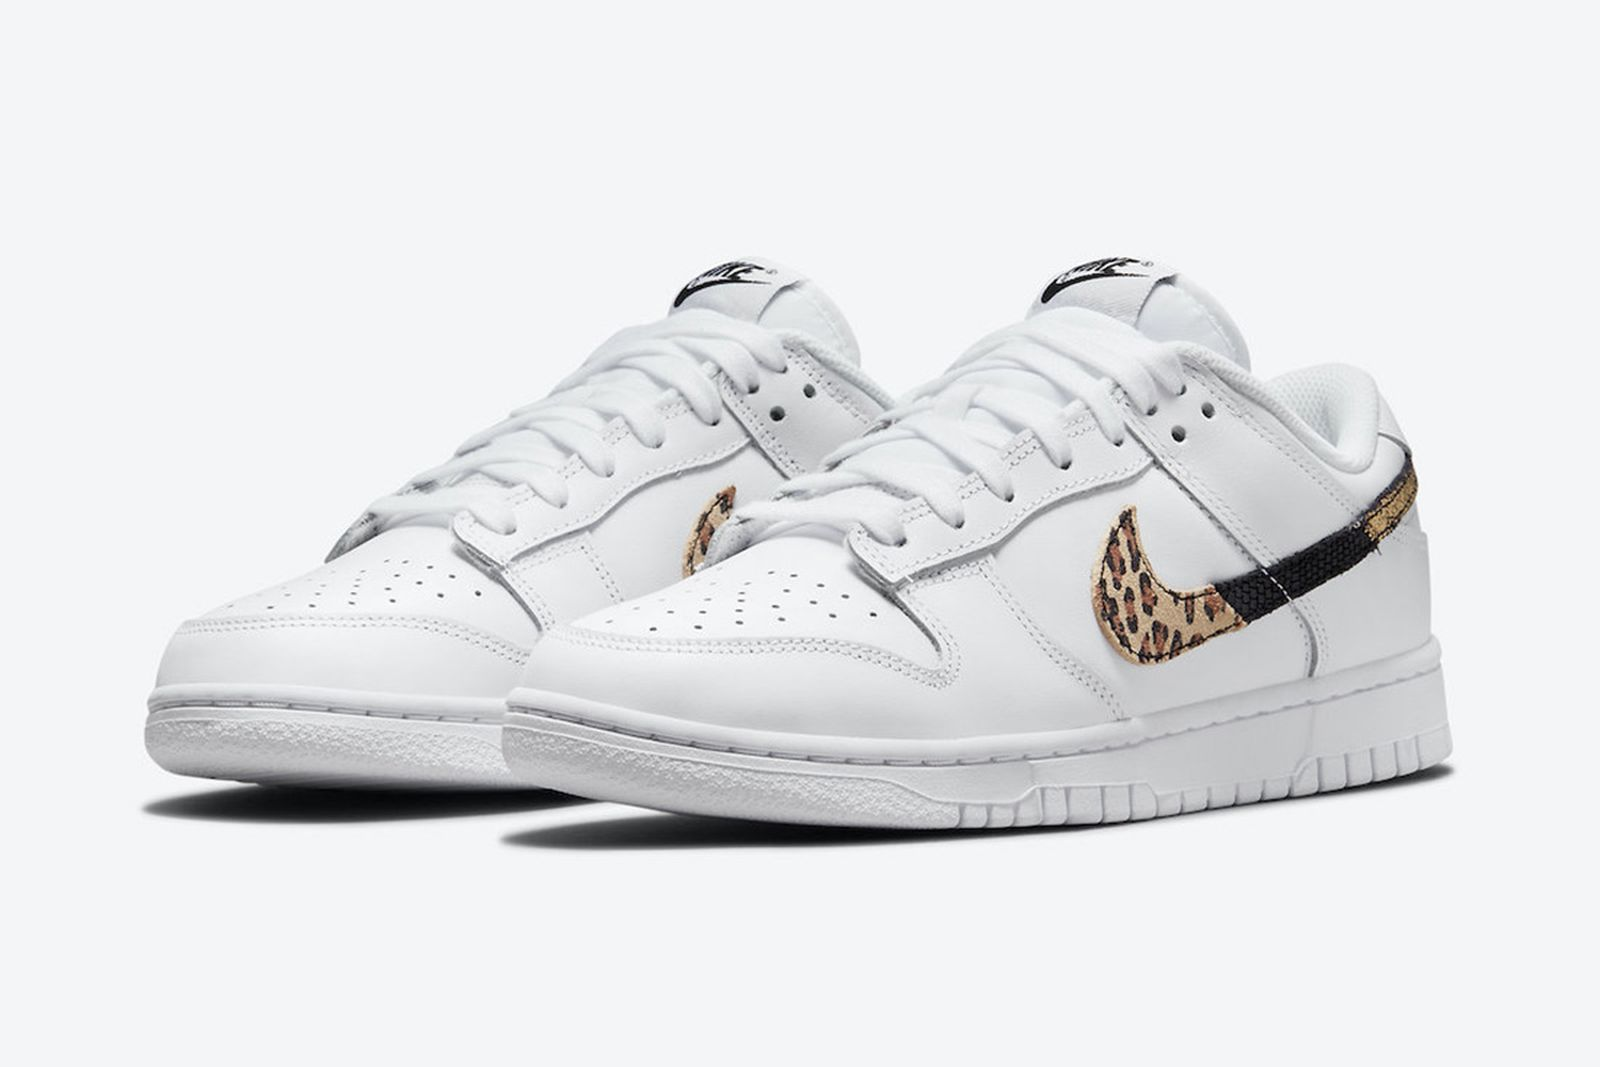 nike-dunk-low-upcoming-2021-releases-07